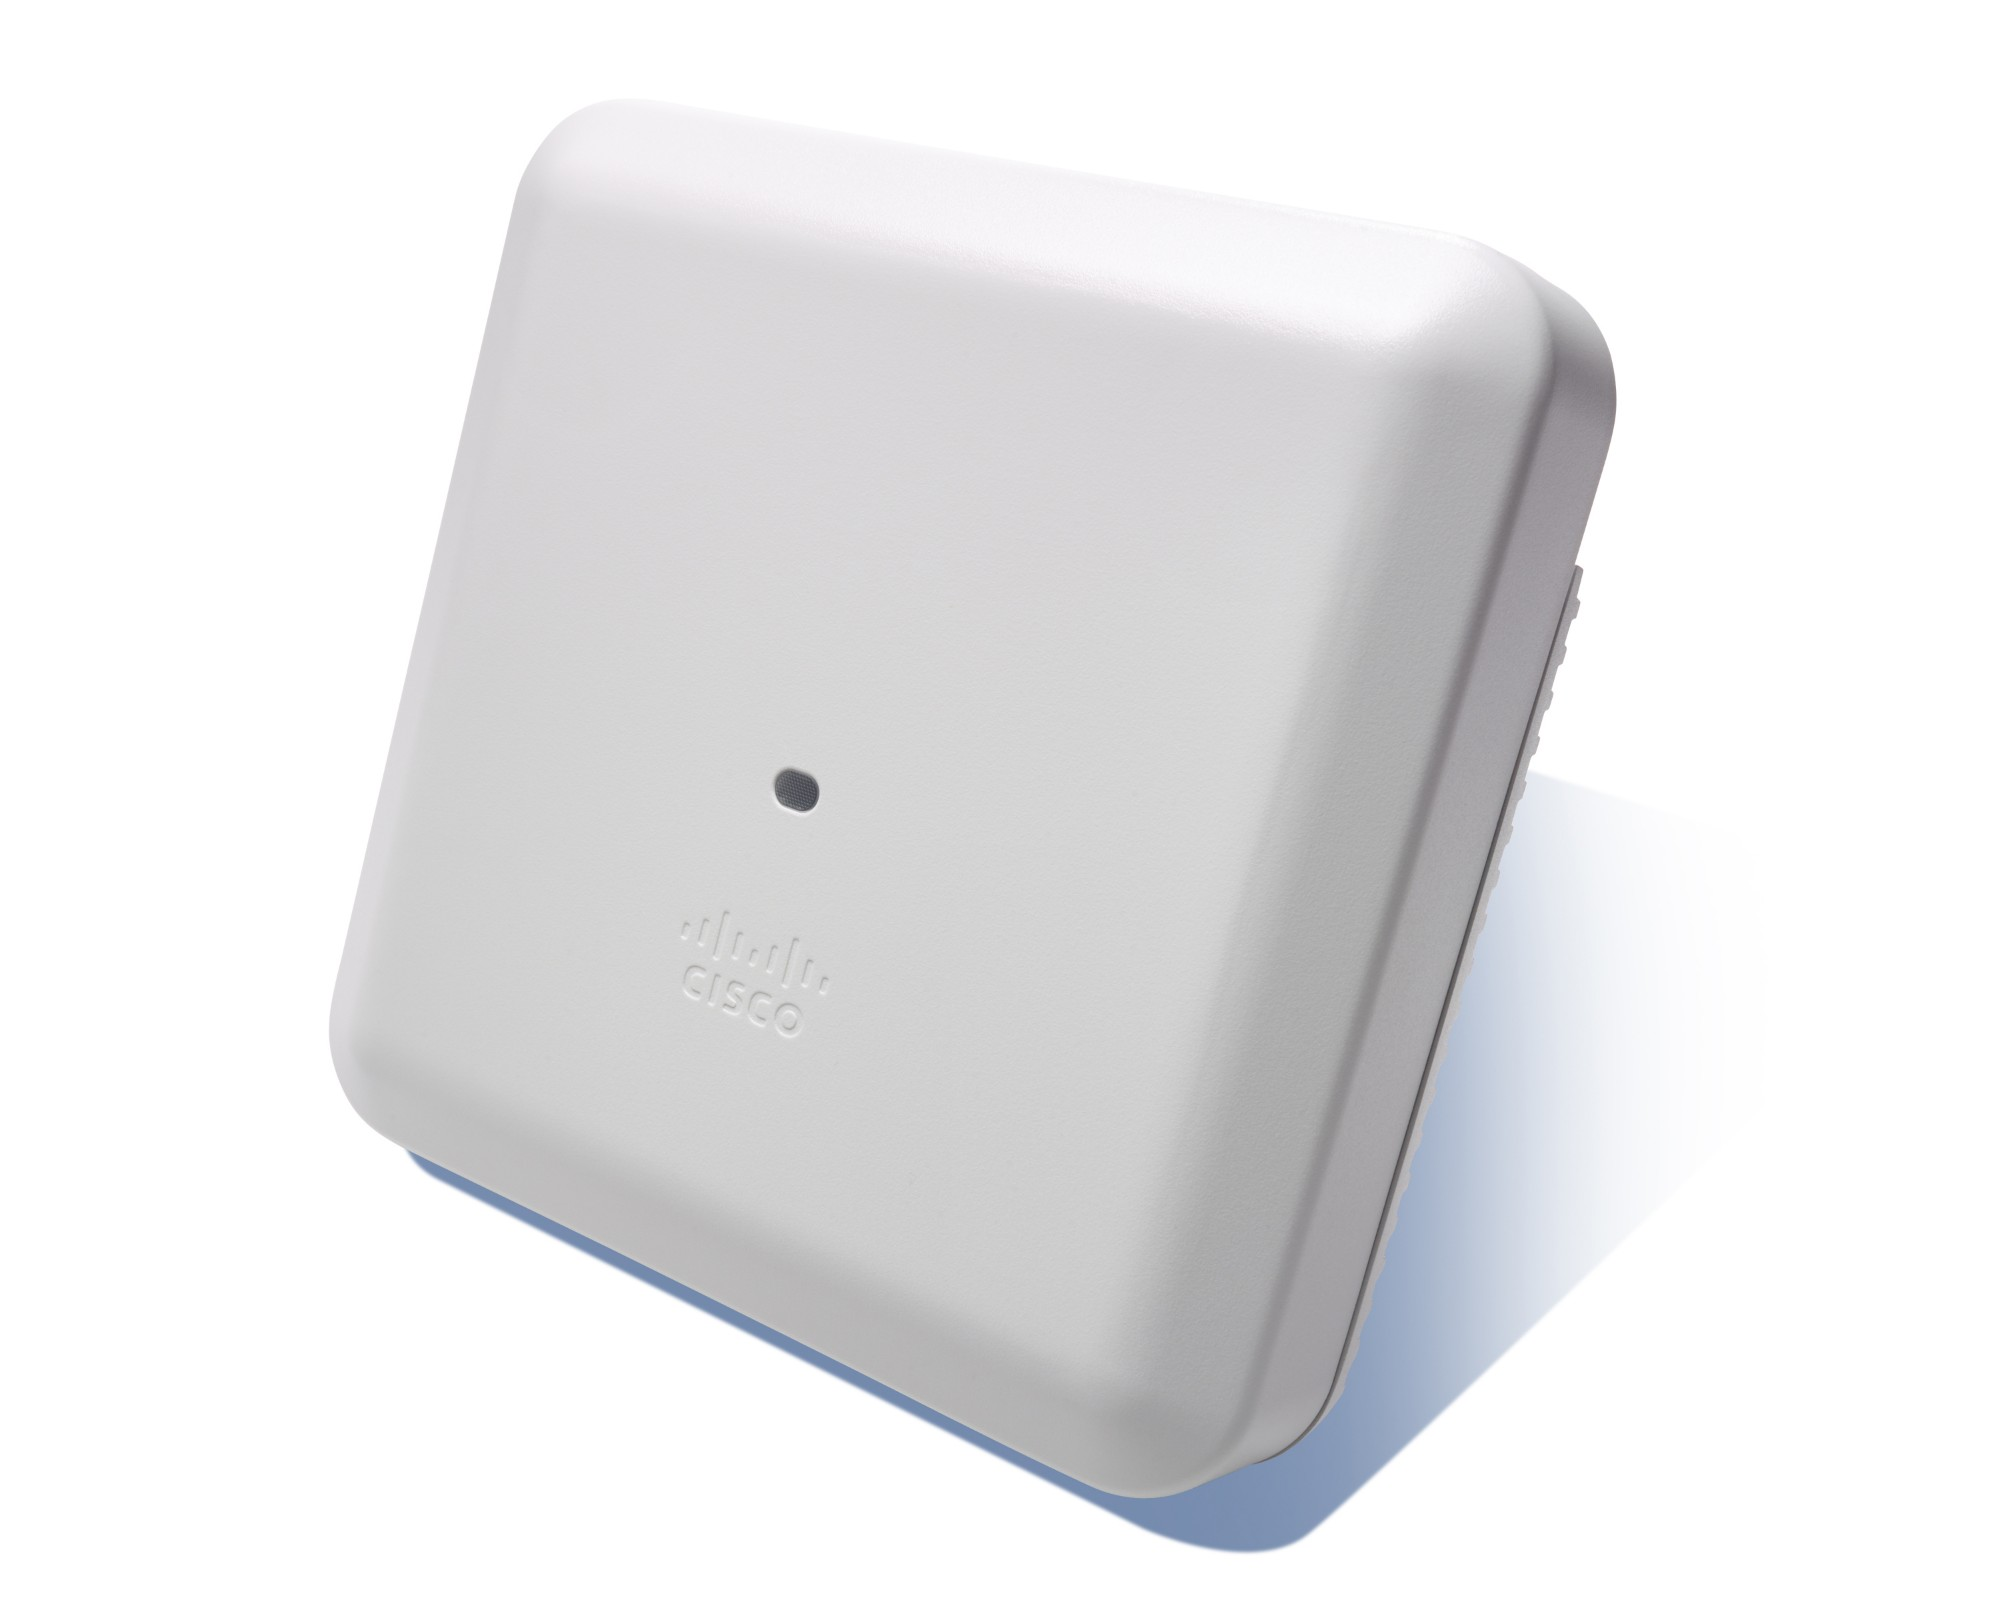 Cisco Aironet 2800 WLAN access point 5200 Mbit/s Power over Ethernet (PoE) White